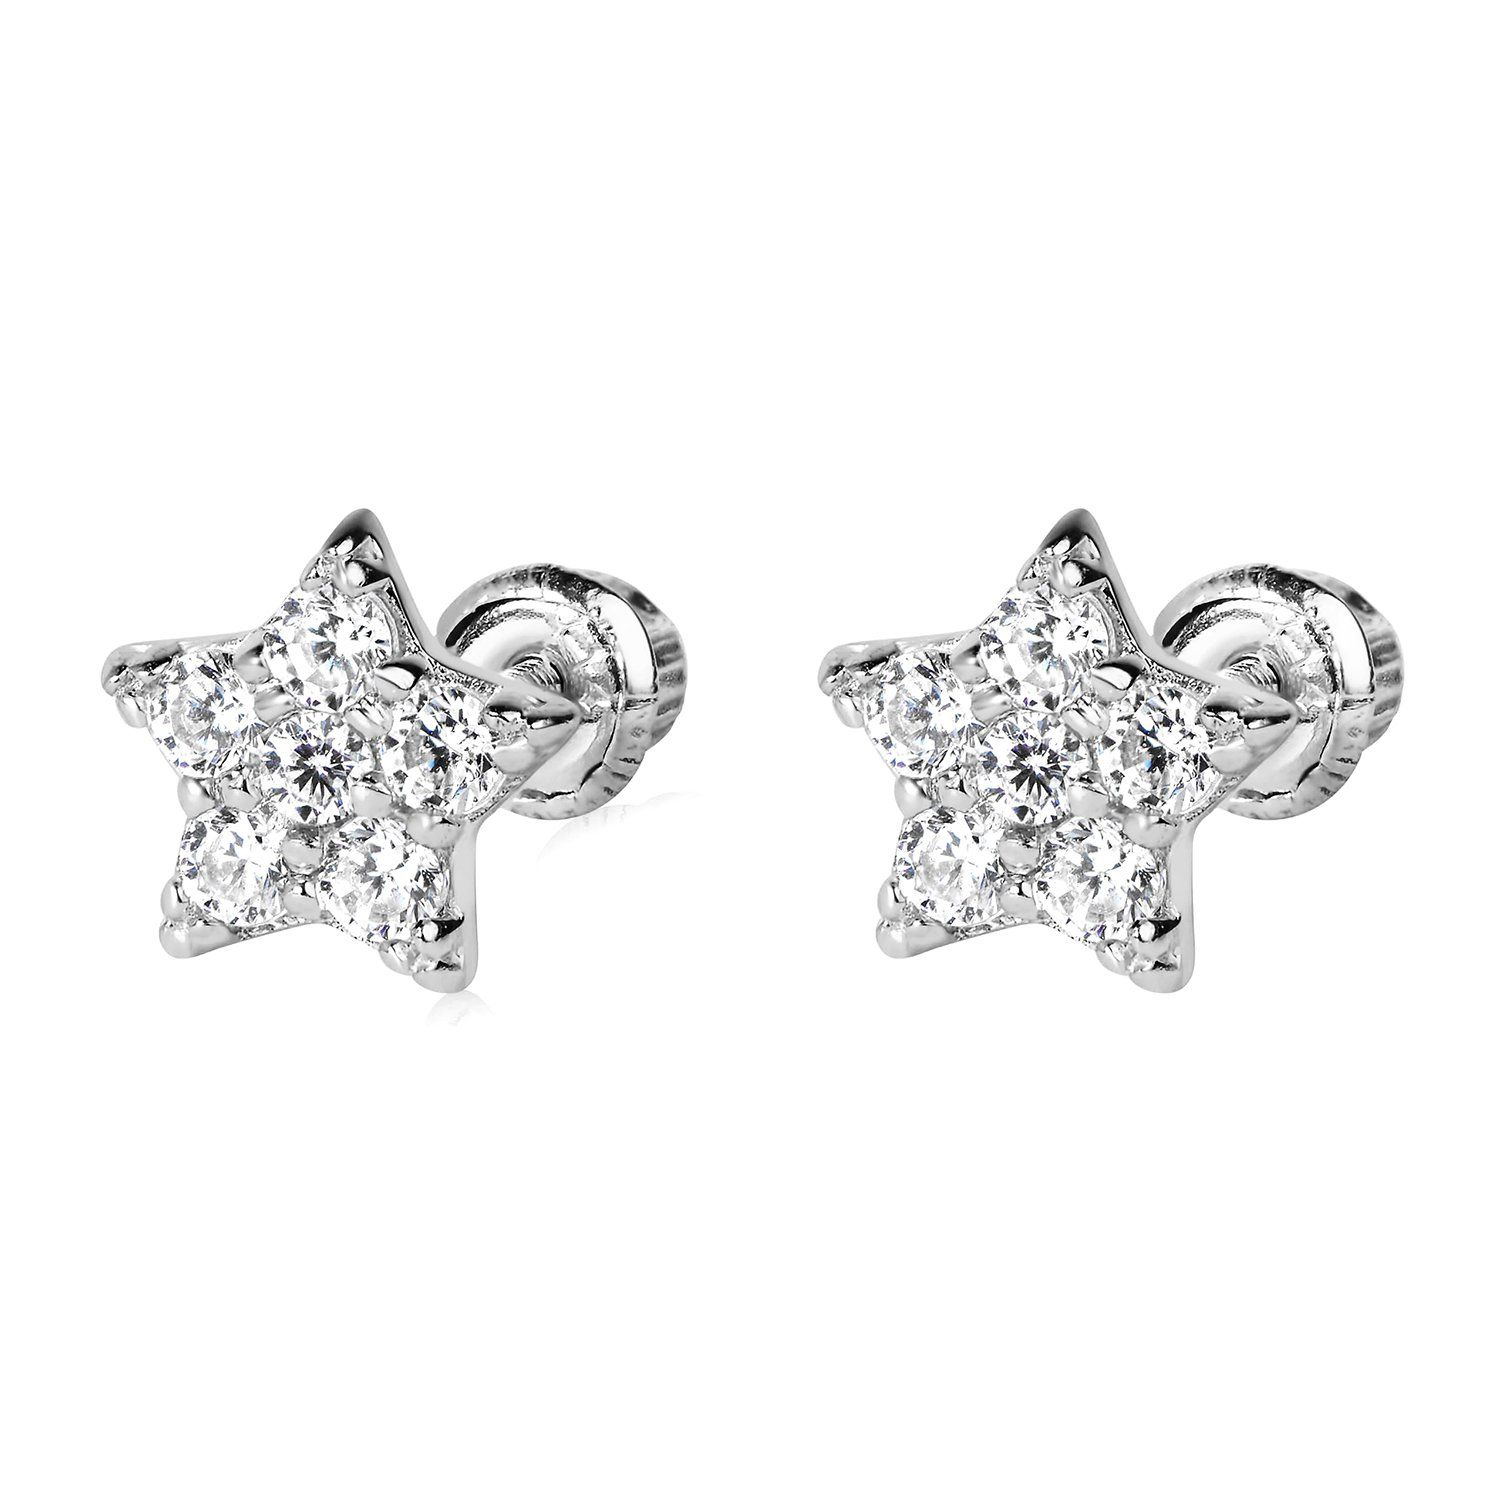 Olivias Collection 14K White Gold Ball Stud Earrings 4mm